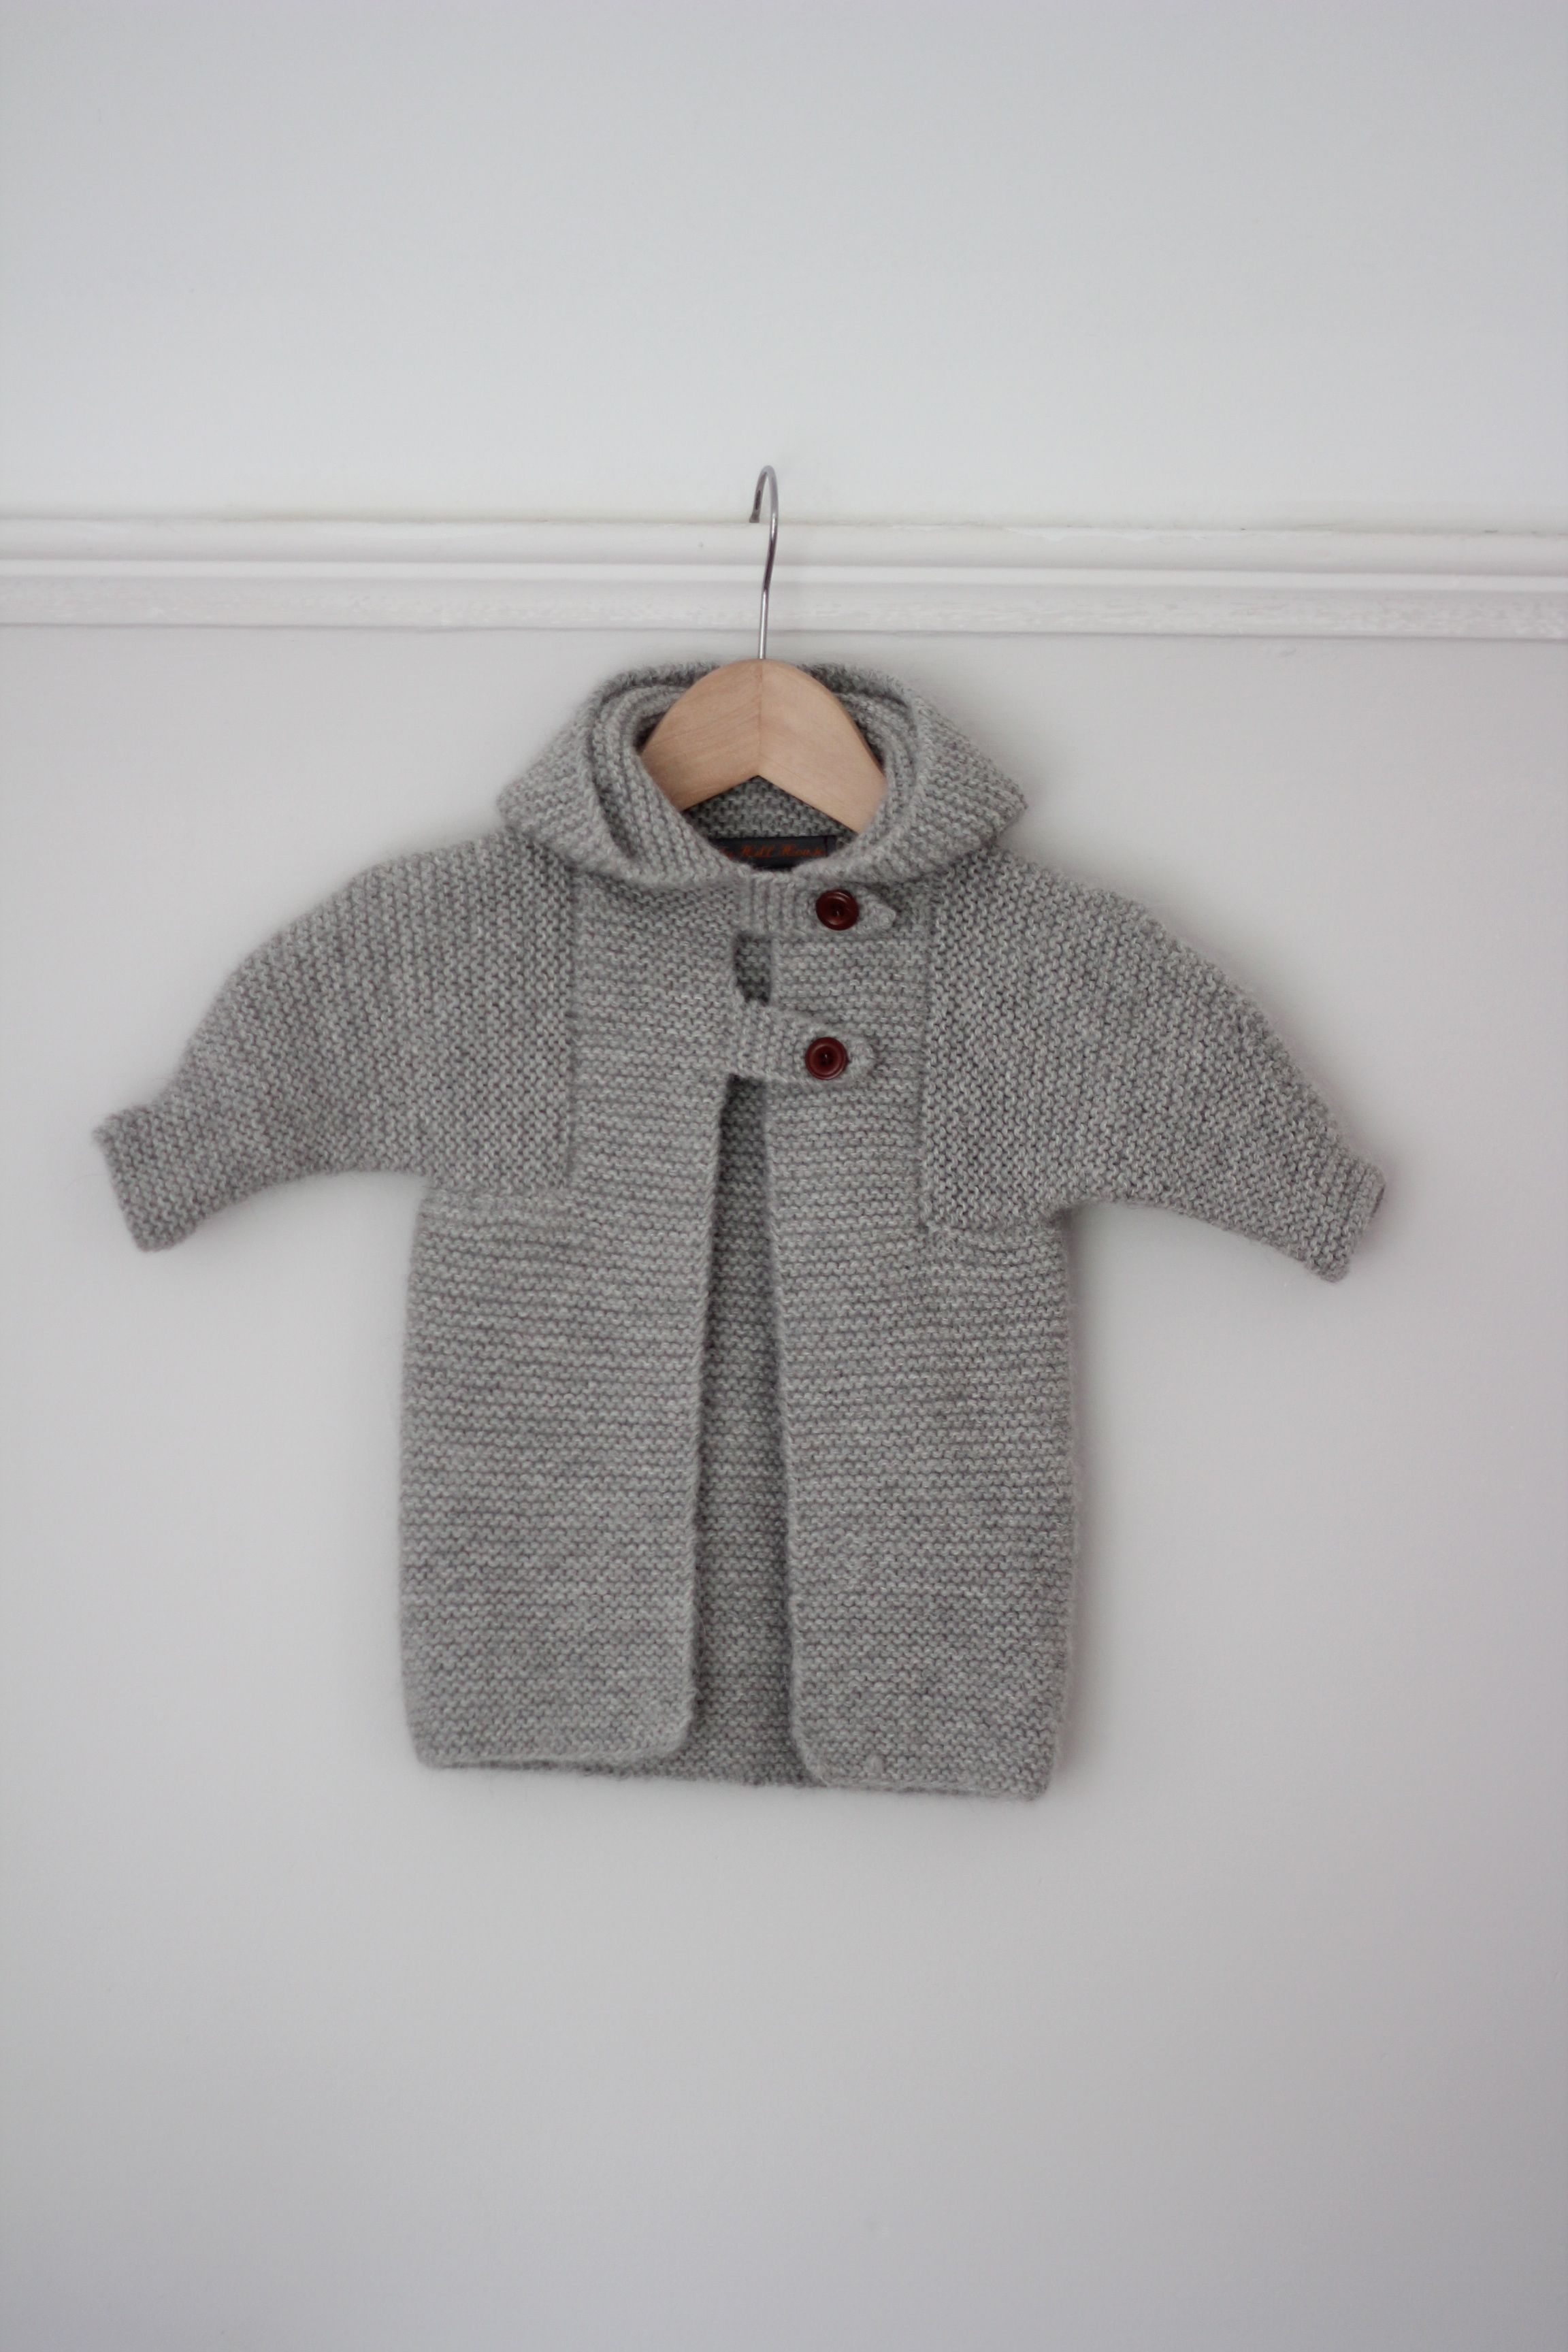 Cardigan for Baby Asher Pattern - Elizabeth Zimmerman | Knitting ...